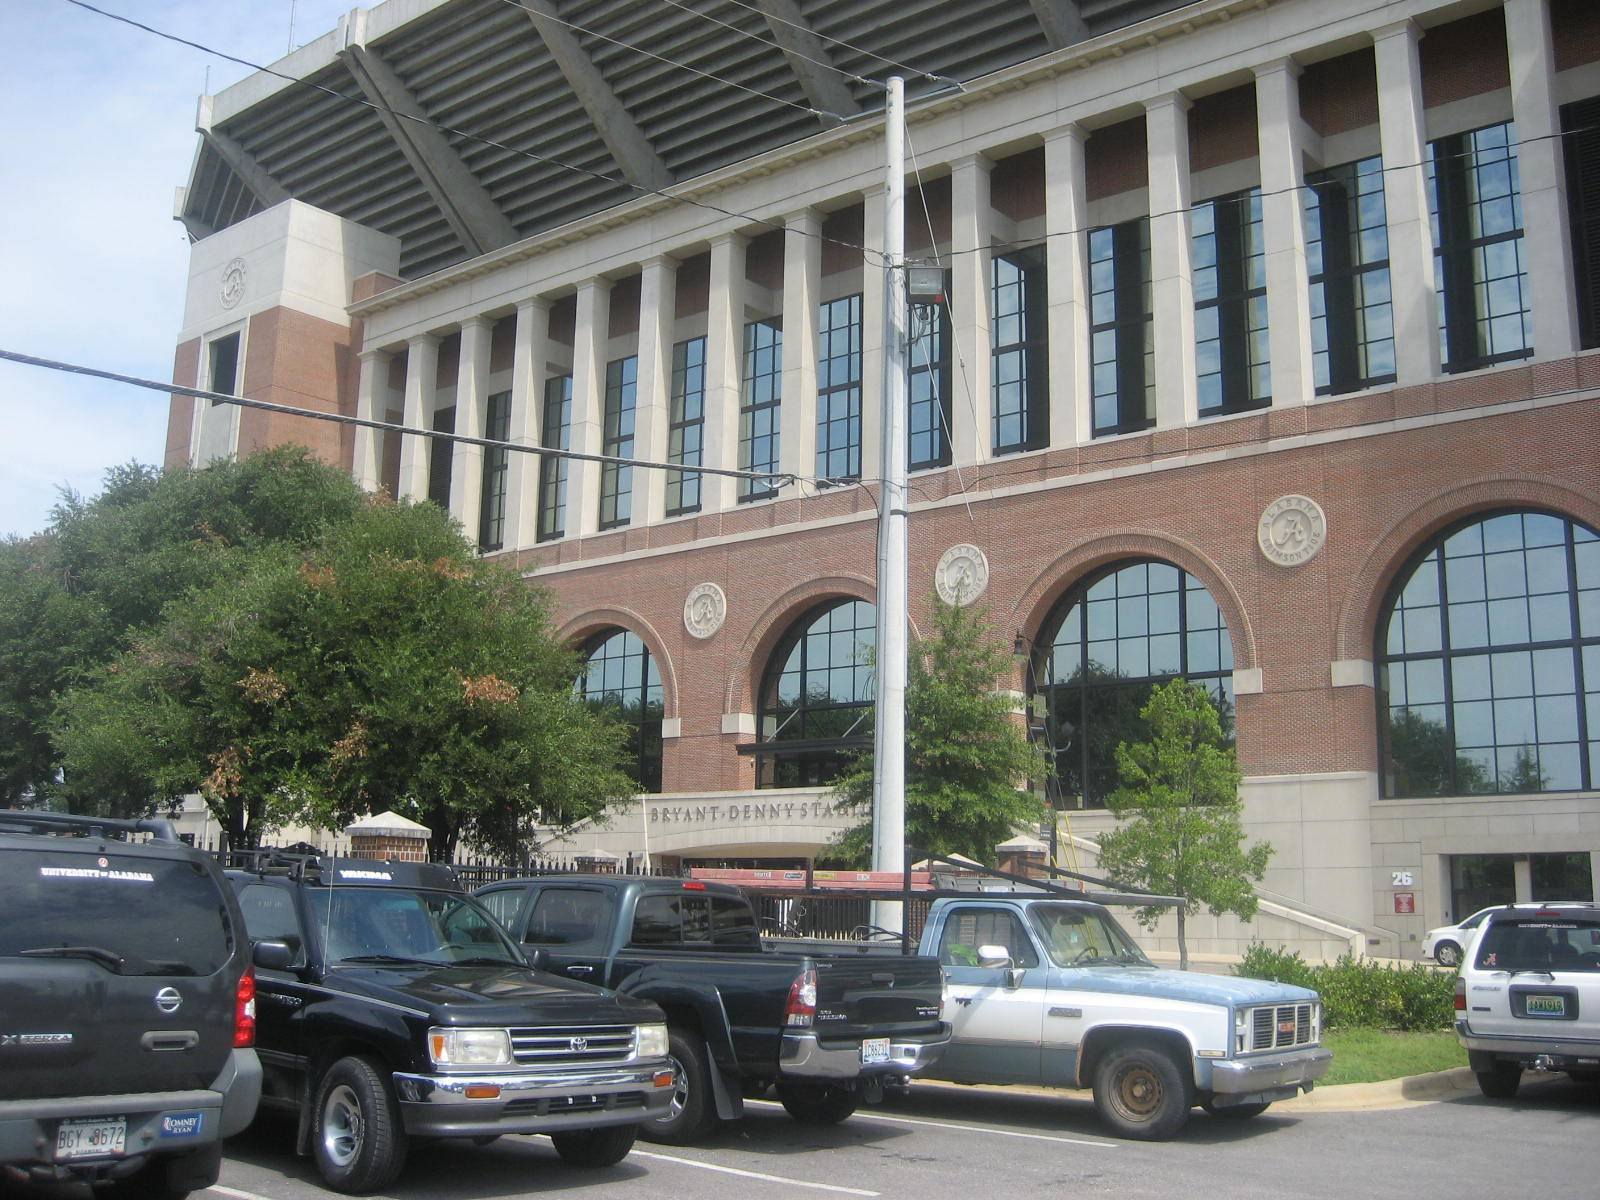 bryant denny stadium close parking